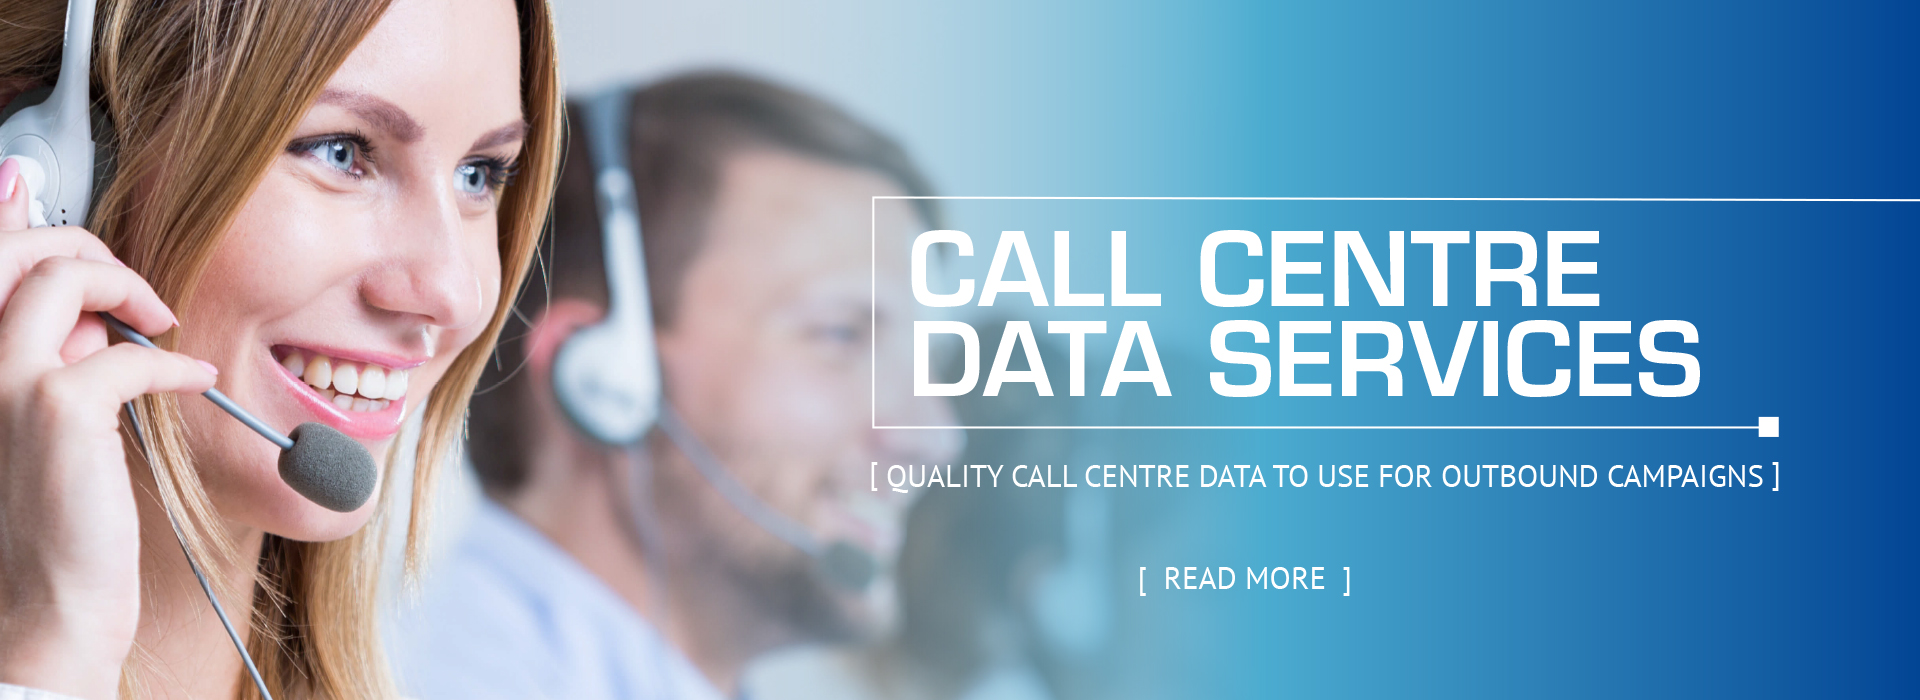 Call Centre Data Services